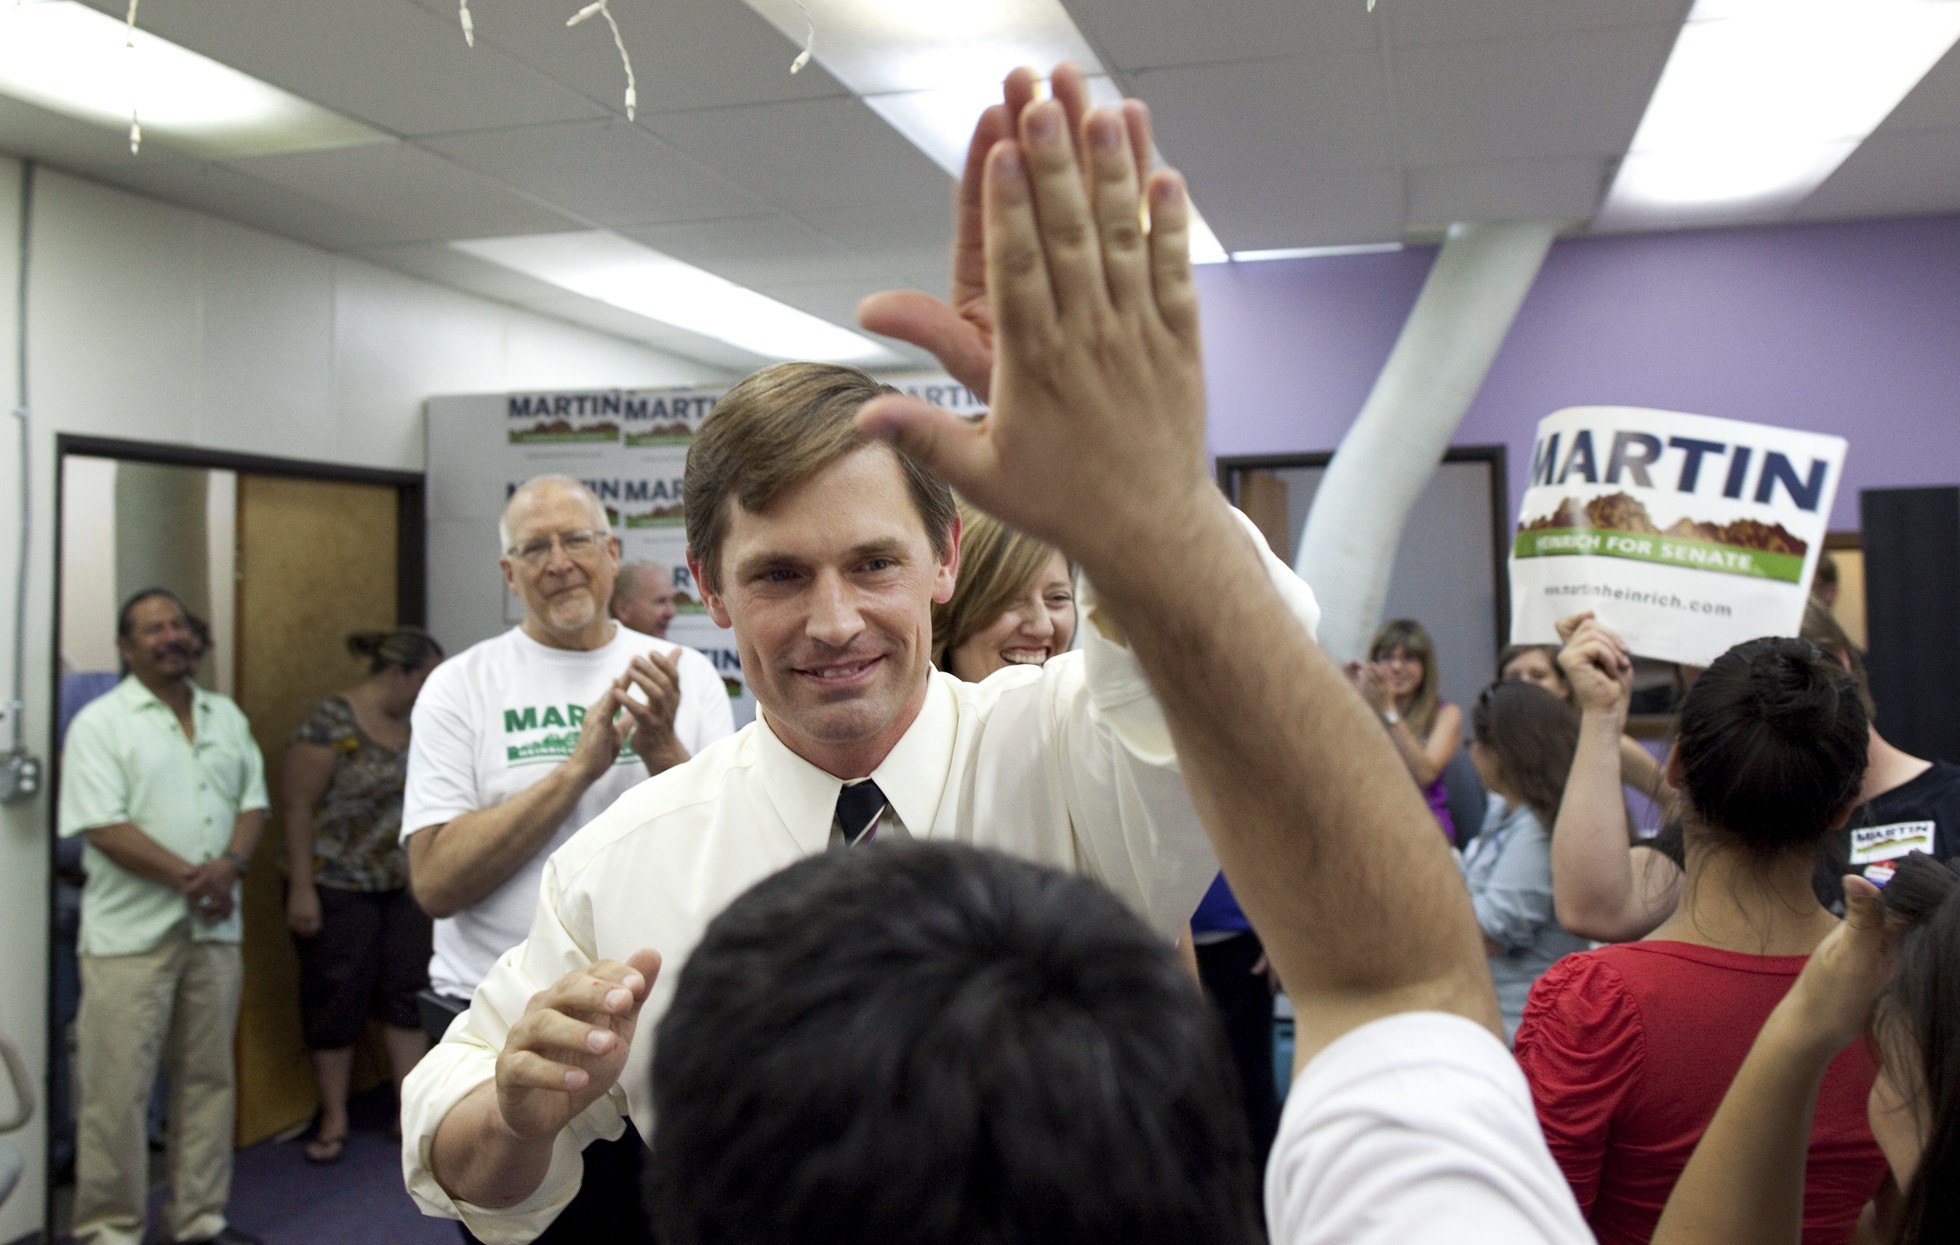 Rep. Martin Heinrich / AP